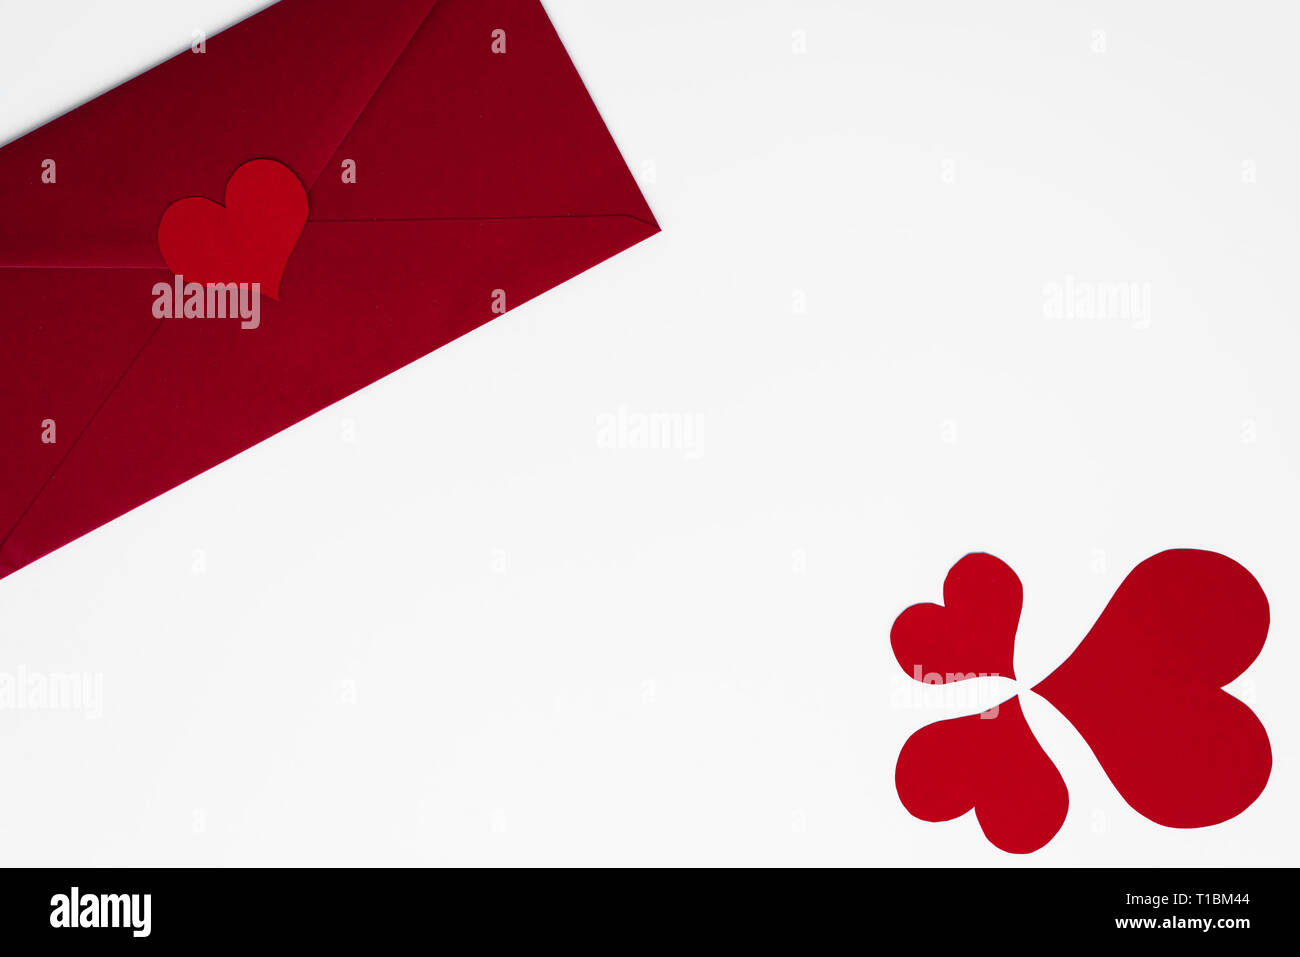 Love letter concept in red envelope. Romantic hearts arranged as clover for luck, on white background with copy space for Happy Valentines text. Mothe - Stock Image